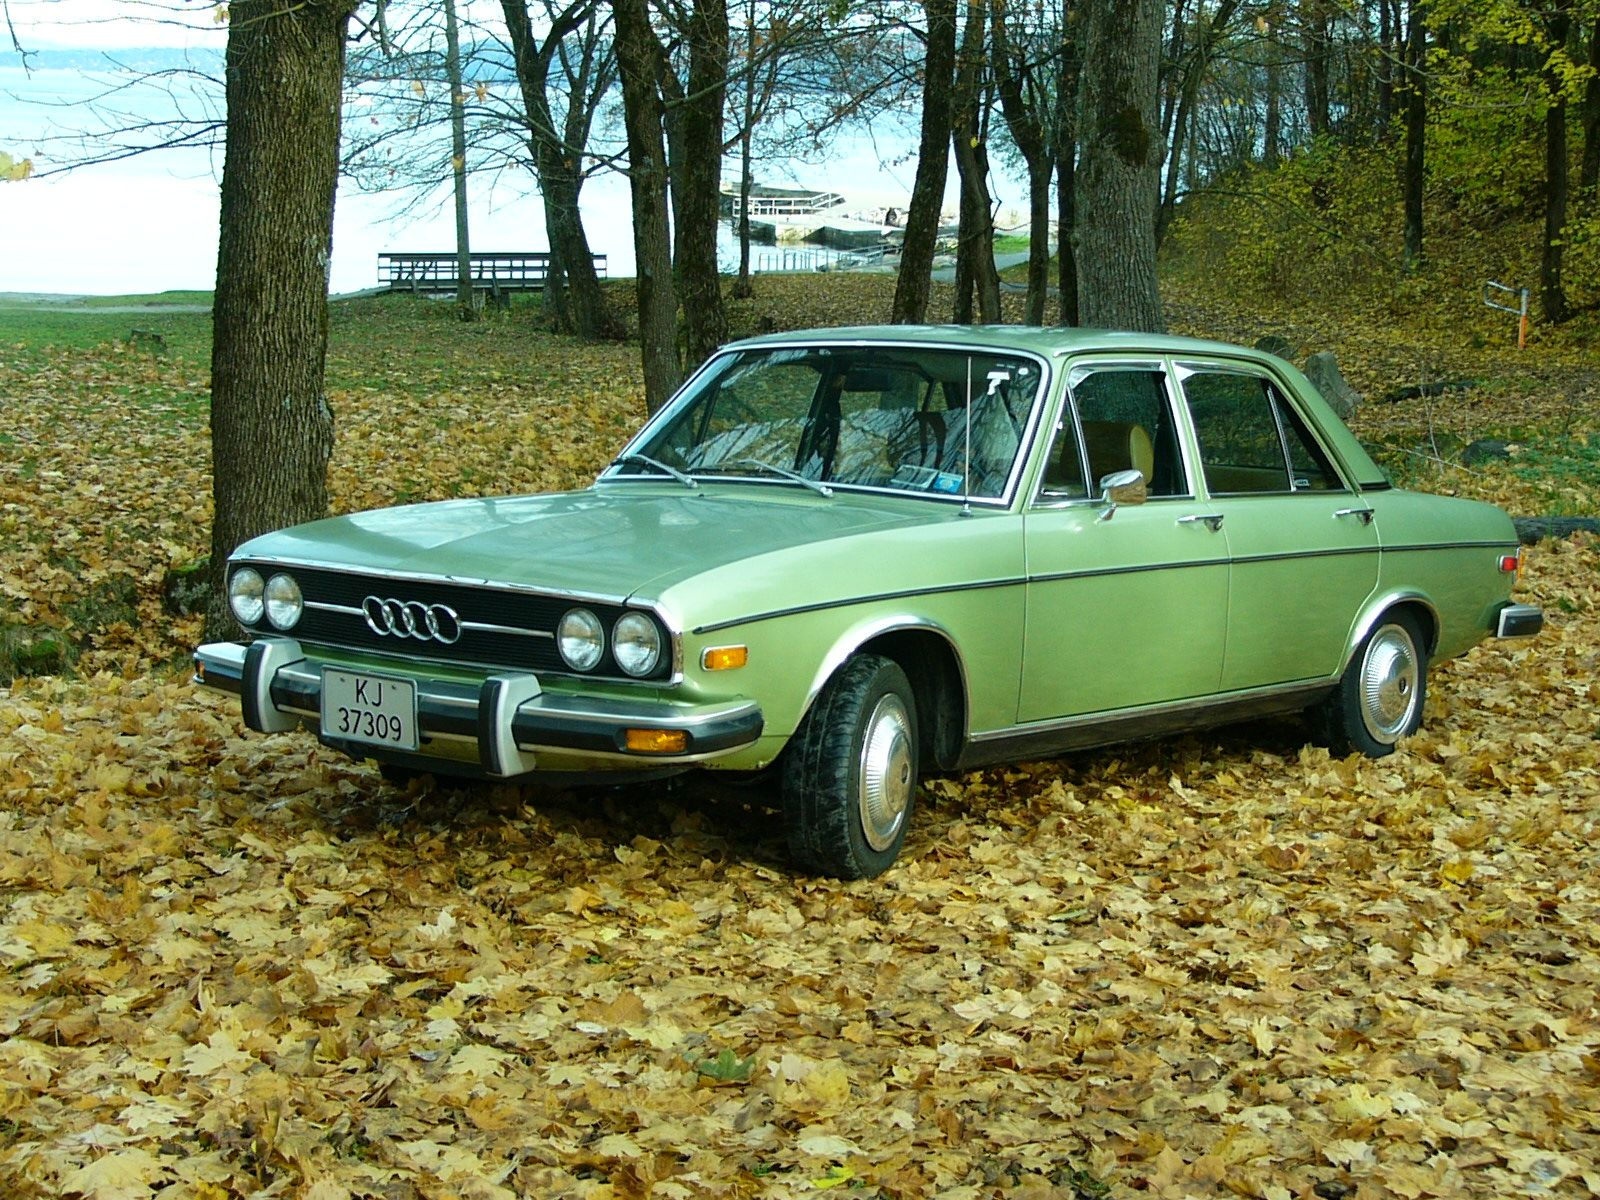 Audi 100 Ls C1 From 1977